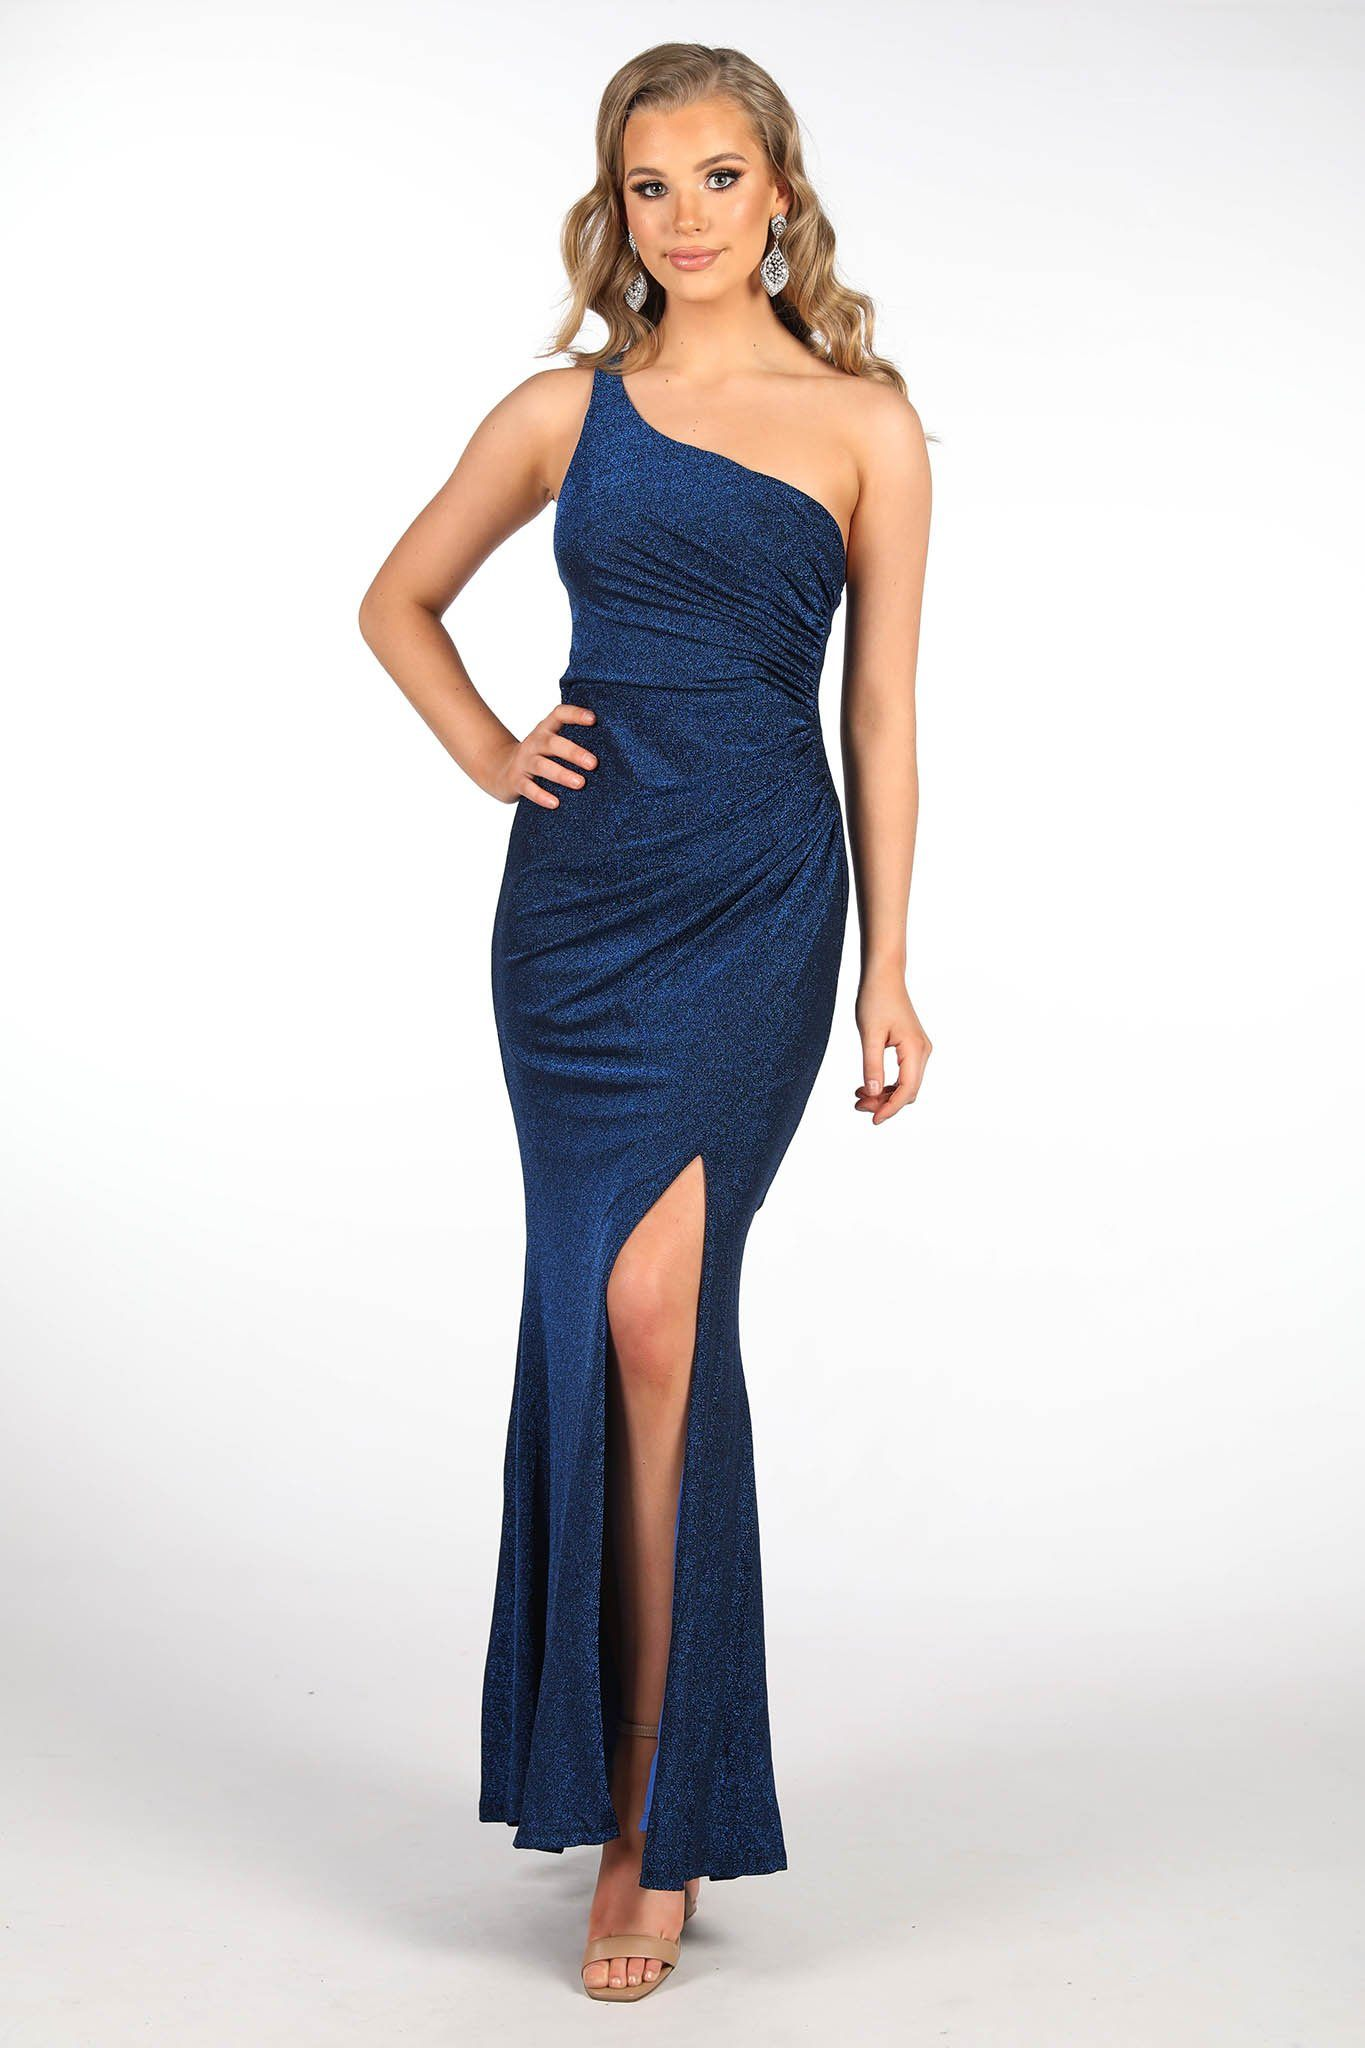 Shimmer blue maxi dress featuring asymmetrical one shoulder neckline, a bodycon fit with gathering detail at the front and thigh-high leg slit